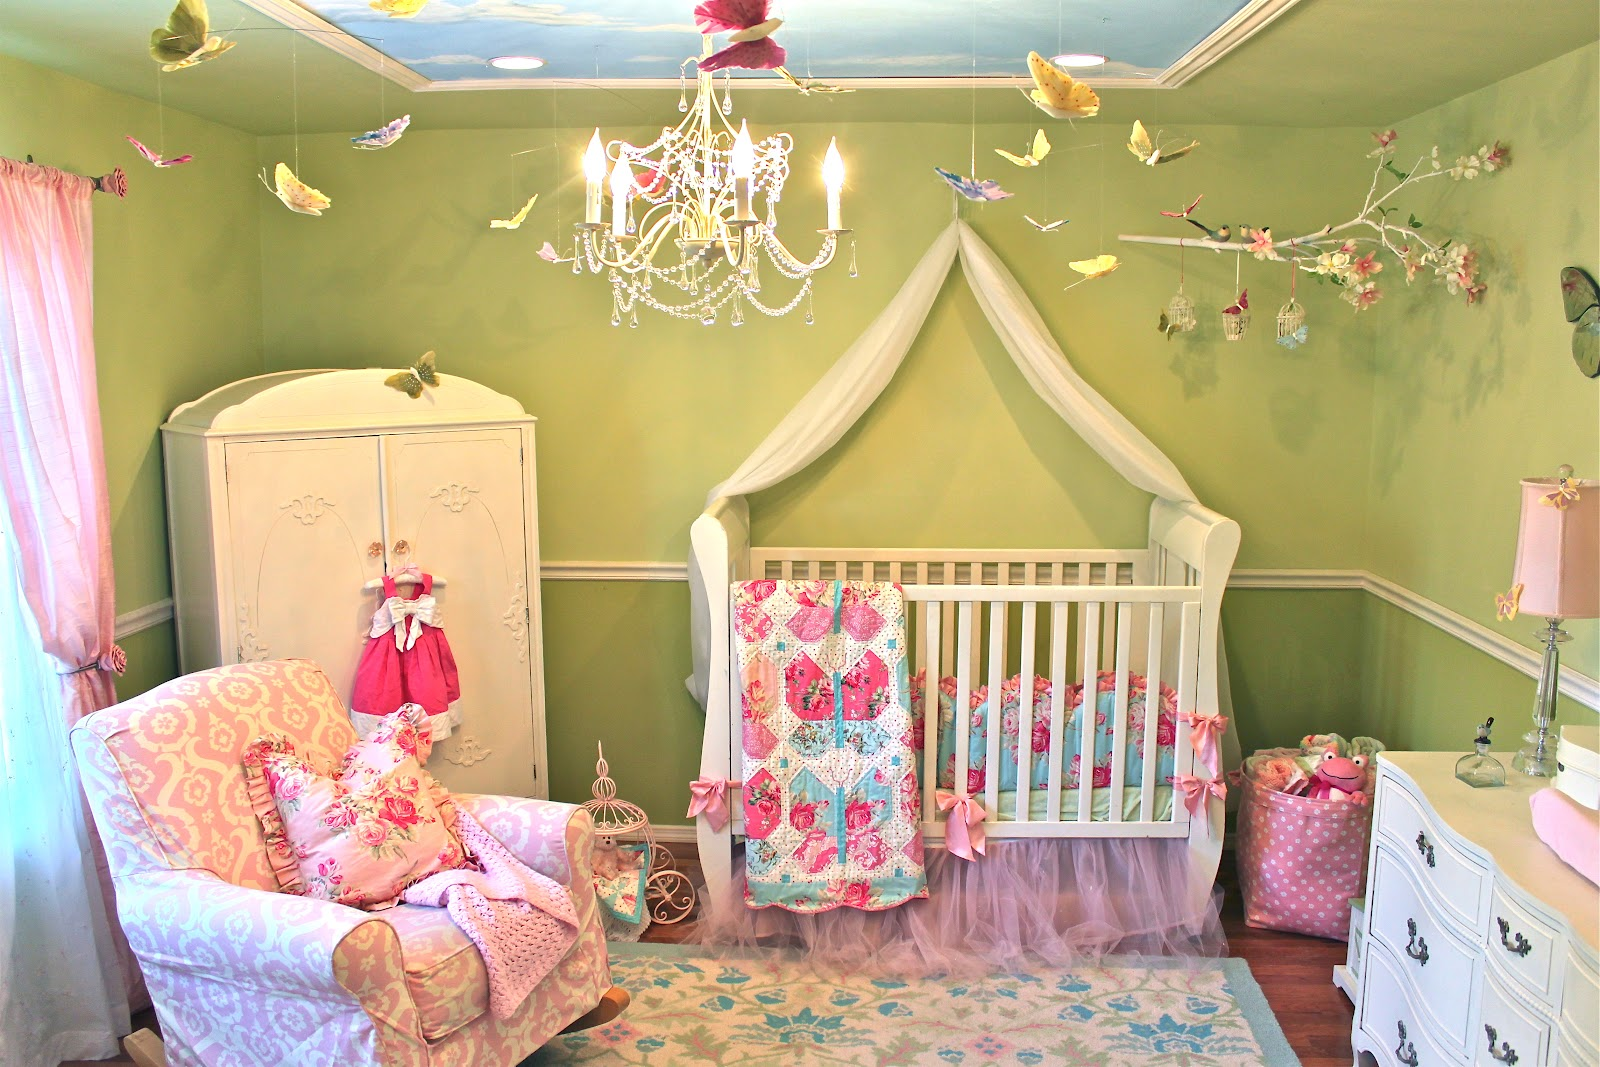 B inspired baby brooke 39 s princess room perfect for a for Diy princess room ideas